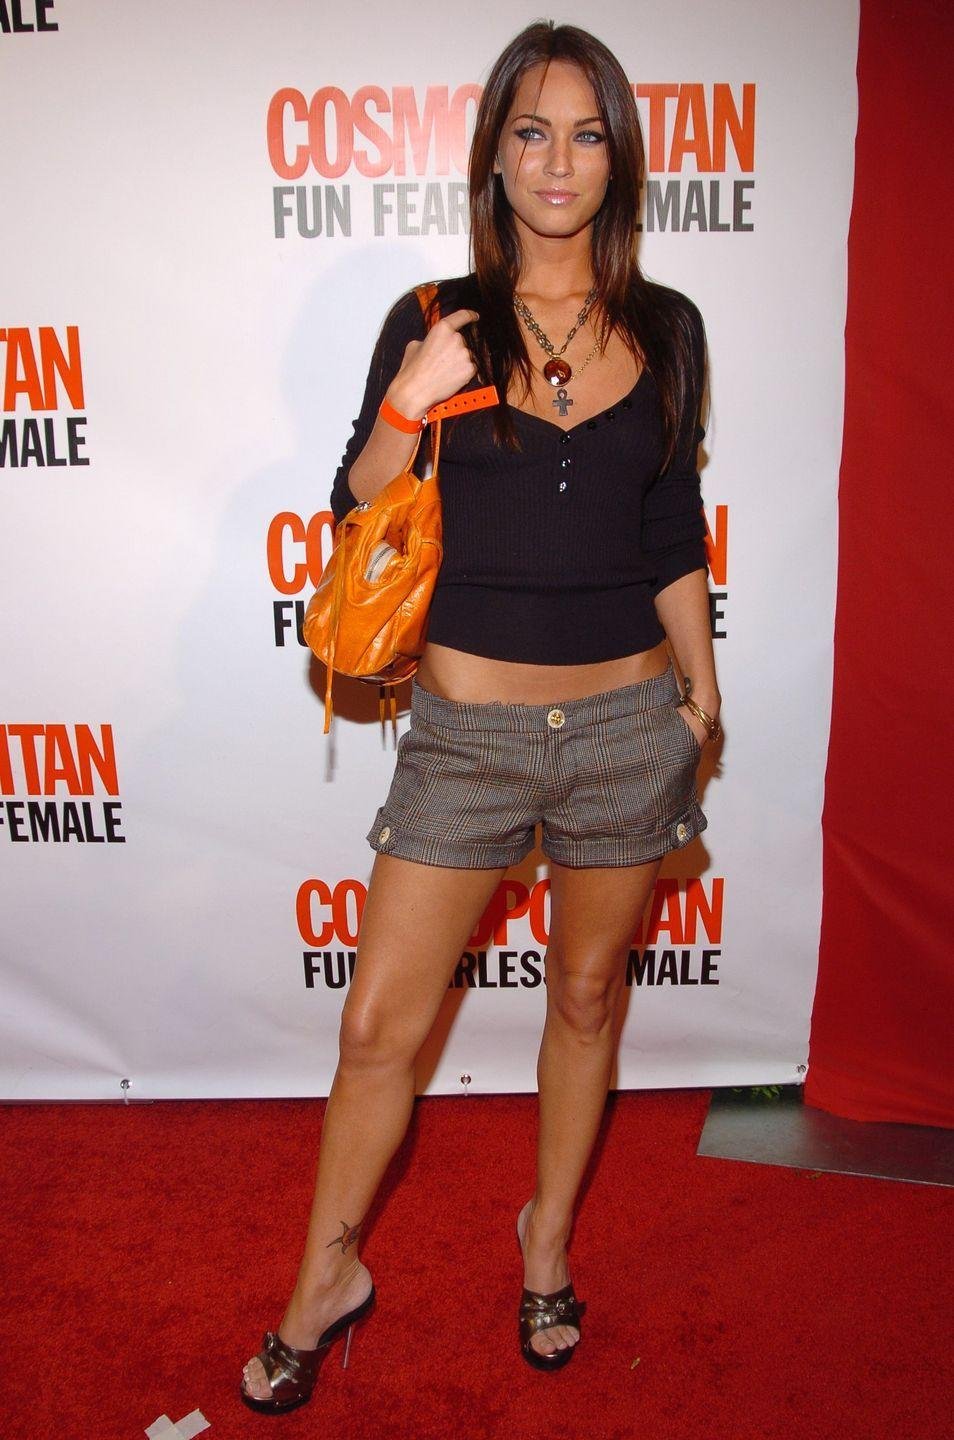 <p>Fox attended Cosmopolitan's 40th Birthday Bash in NYC wearing a pair of shorts, heels and a black knitted V-neck top, styled with a bright orange bag. </p>